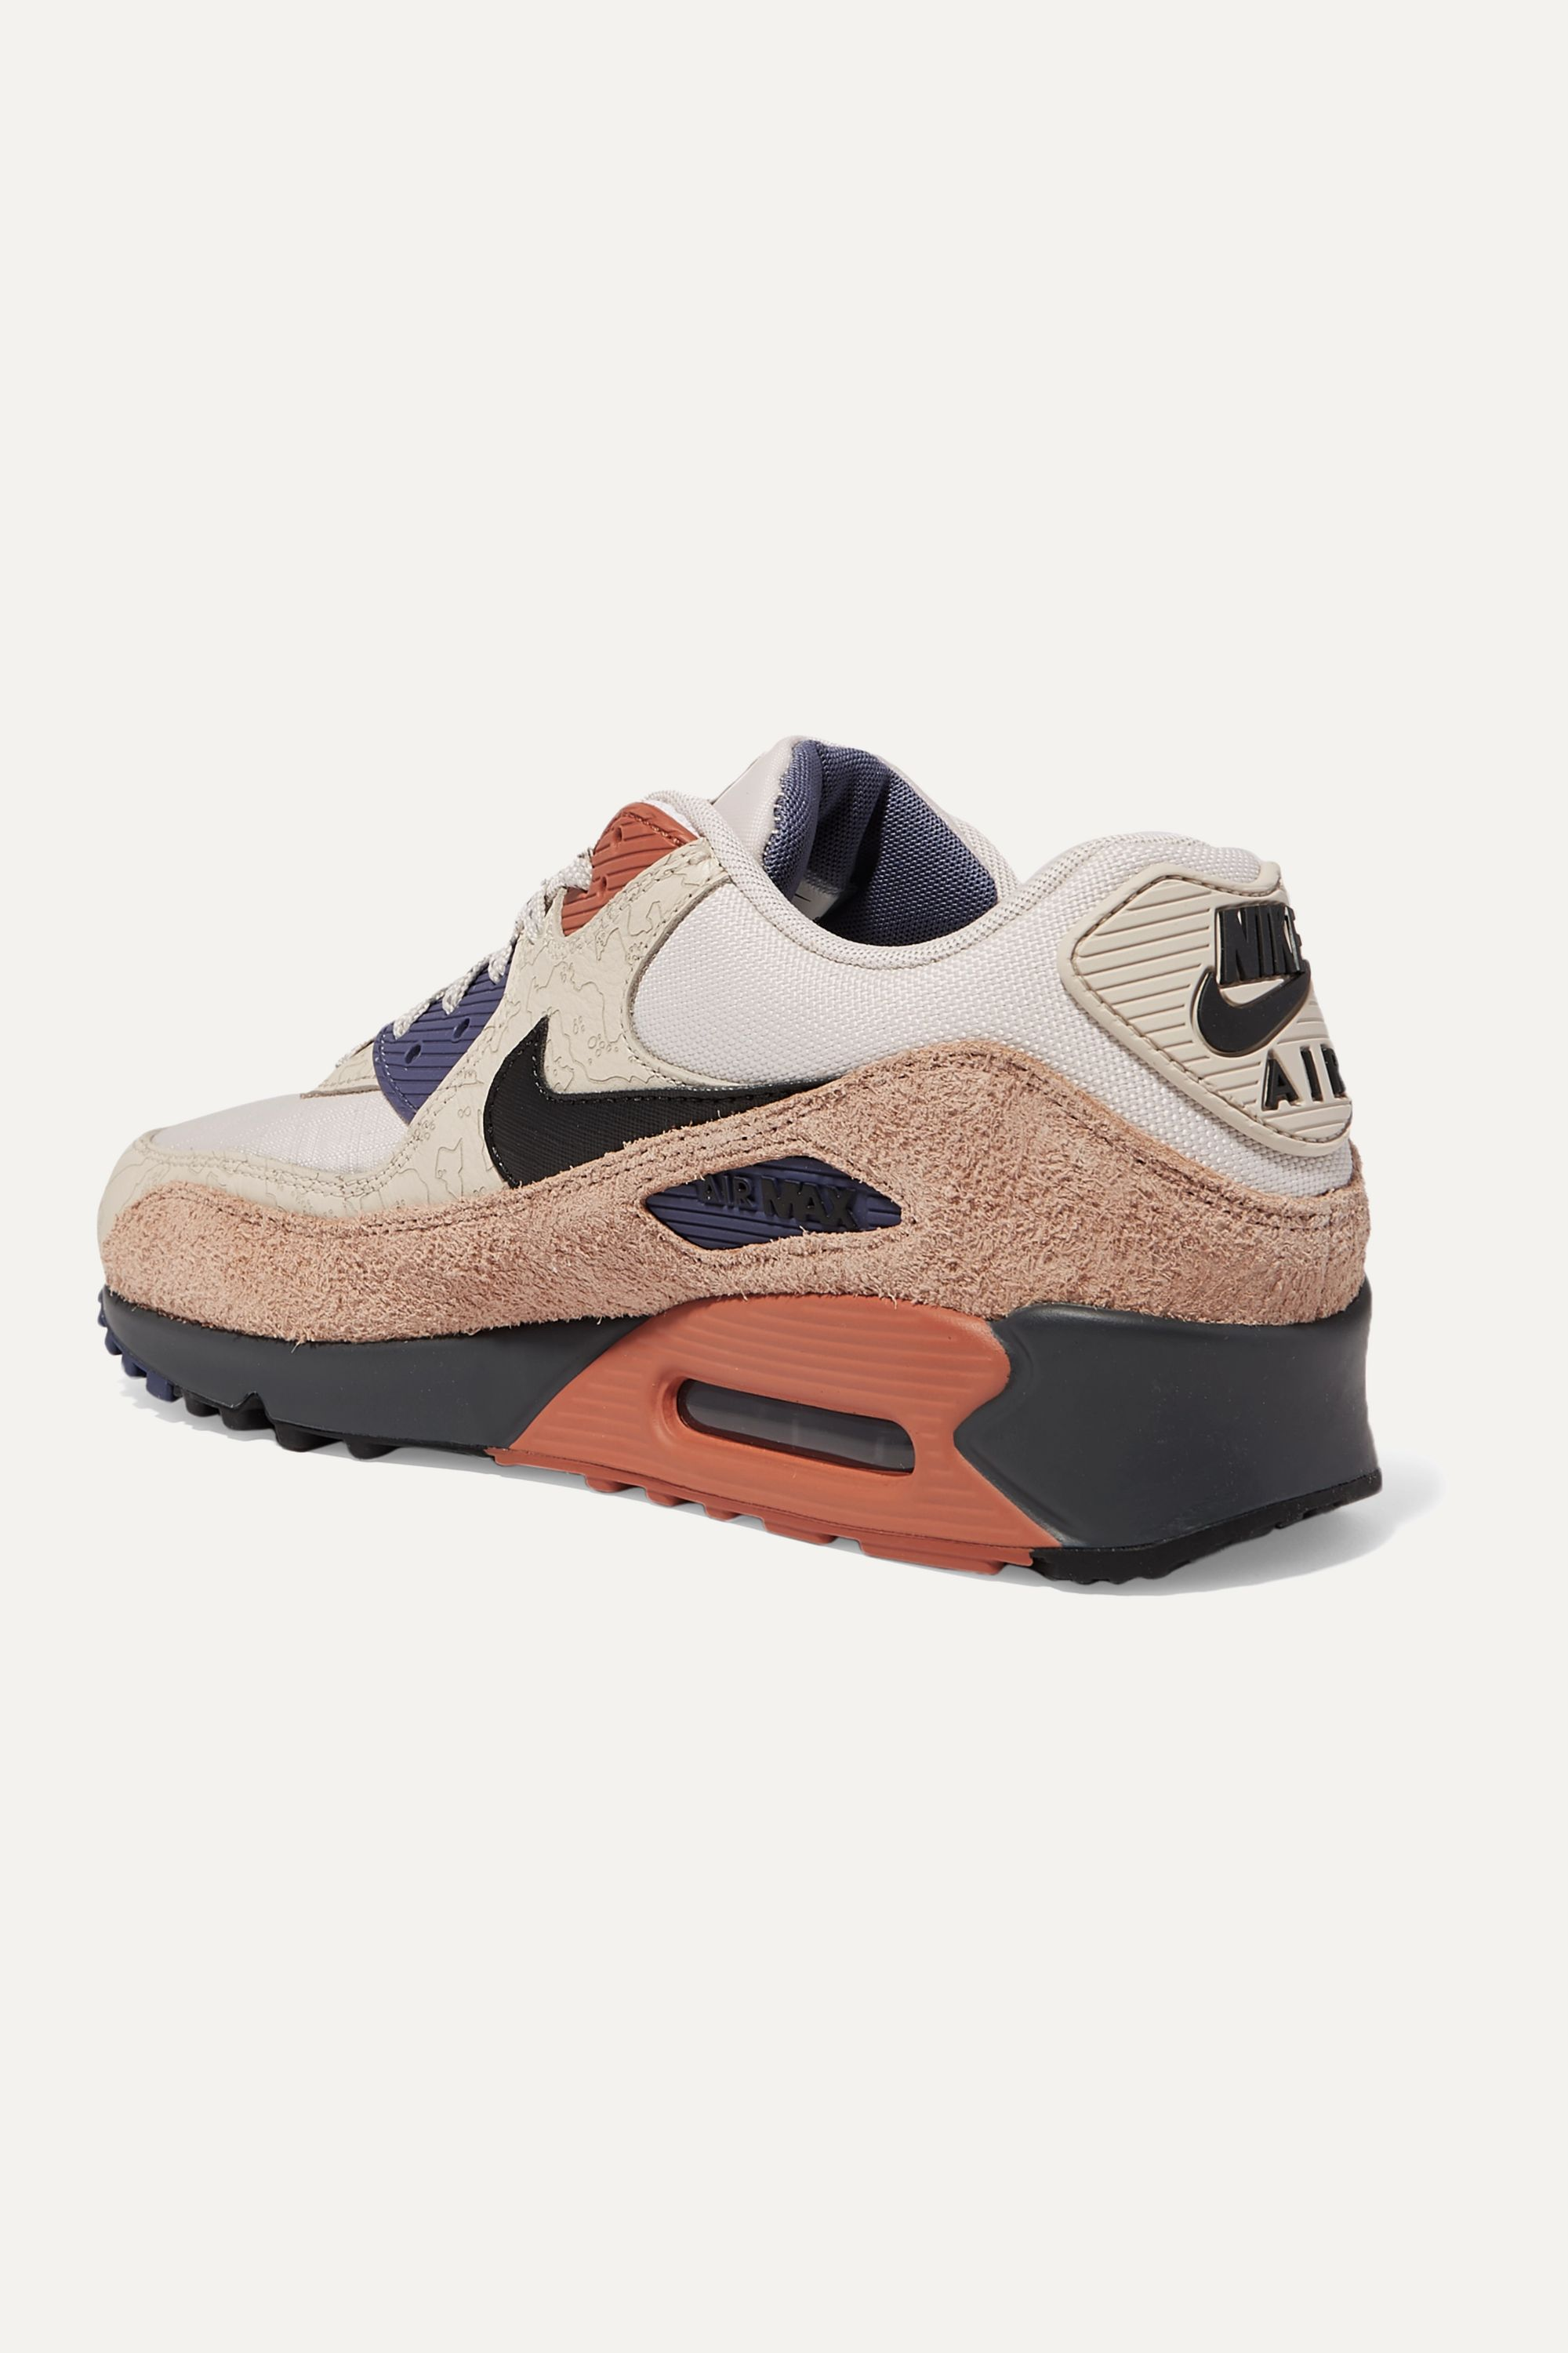 Nike Nike Air Max 90 NRG canvas, textured-leather, suede and rubber sneakers